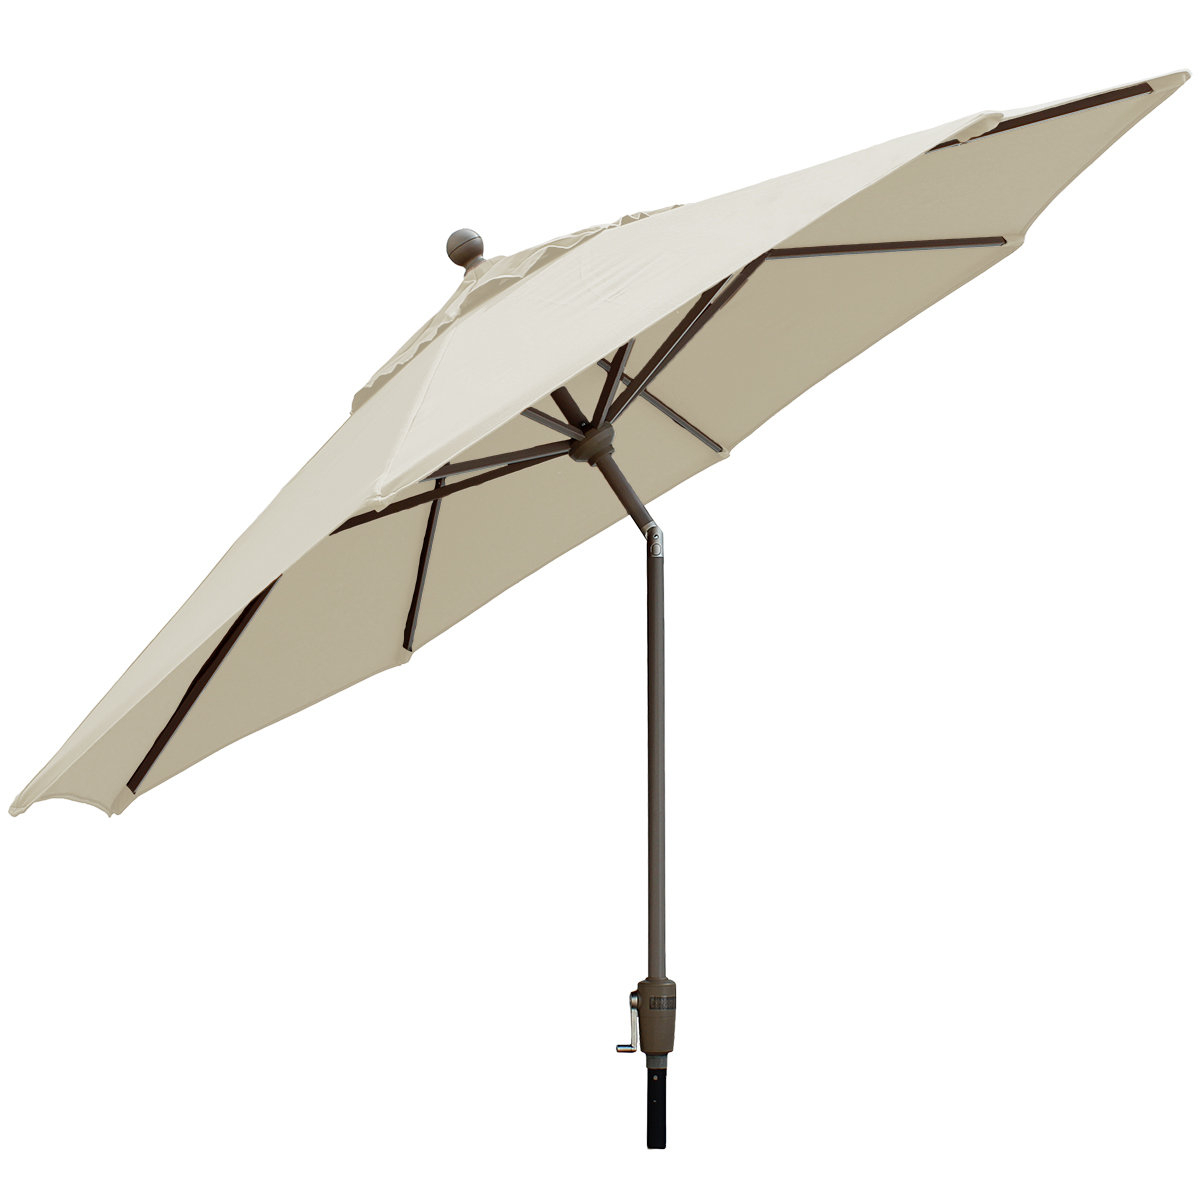 Mucci Madilyn Market Sunbrella Umbrellas Pertaining To Widely Used Crowland 9' Market Sunbrella Umbrella (View 17 of 20)